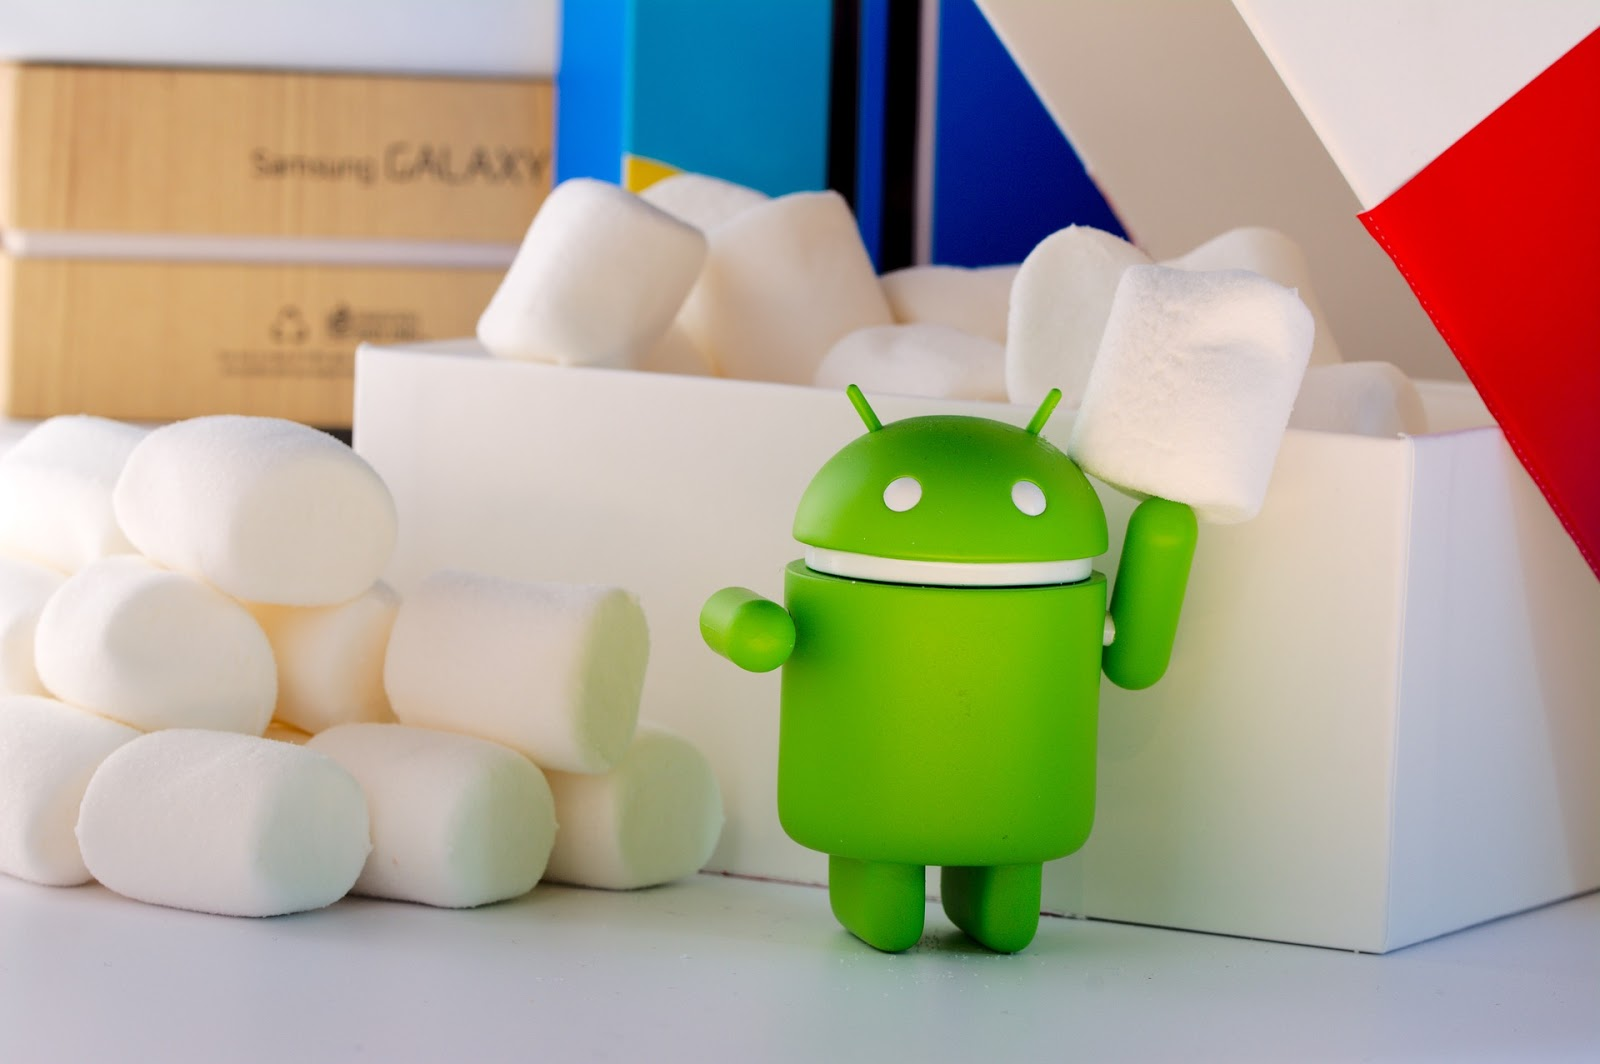 Top 10 video tutorials to learn android best android tutorials top 10 video tutorials to learn andriod baditri Gallery